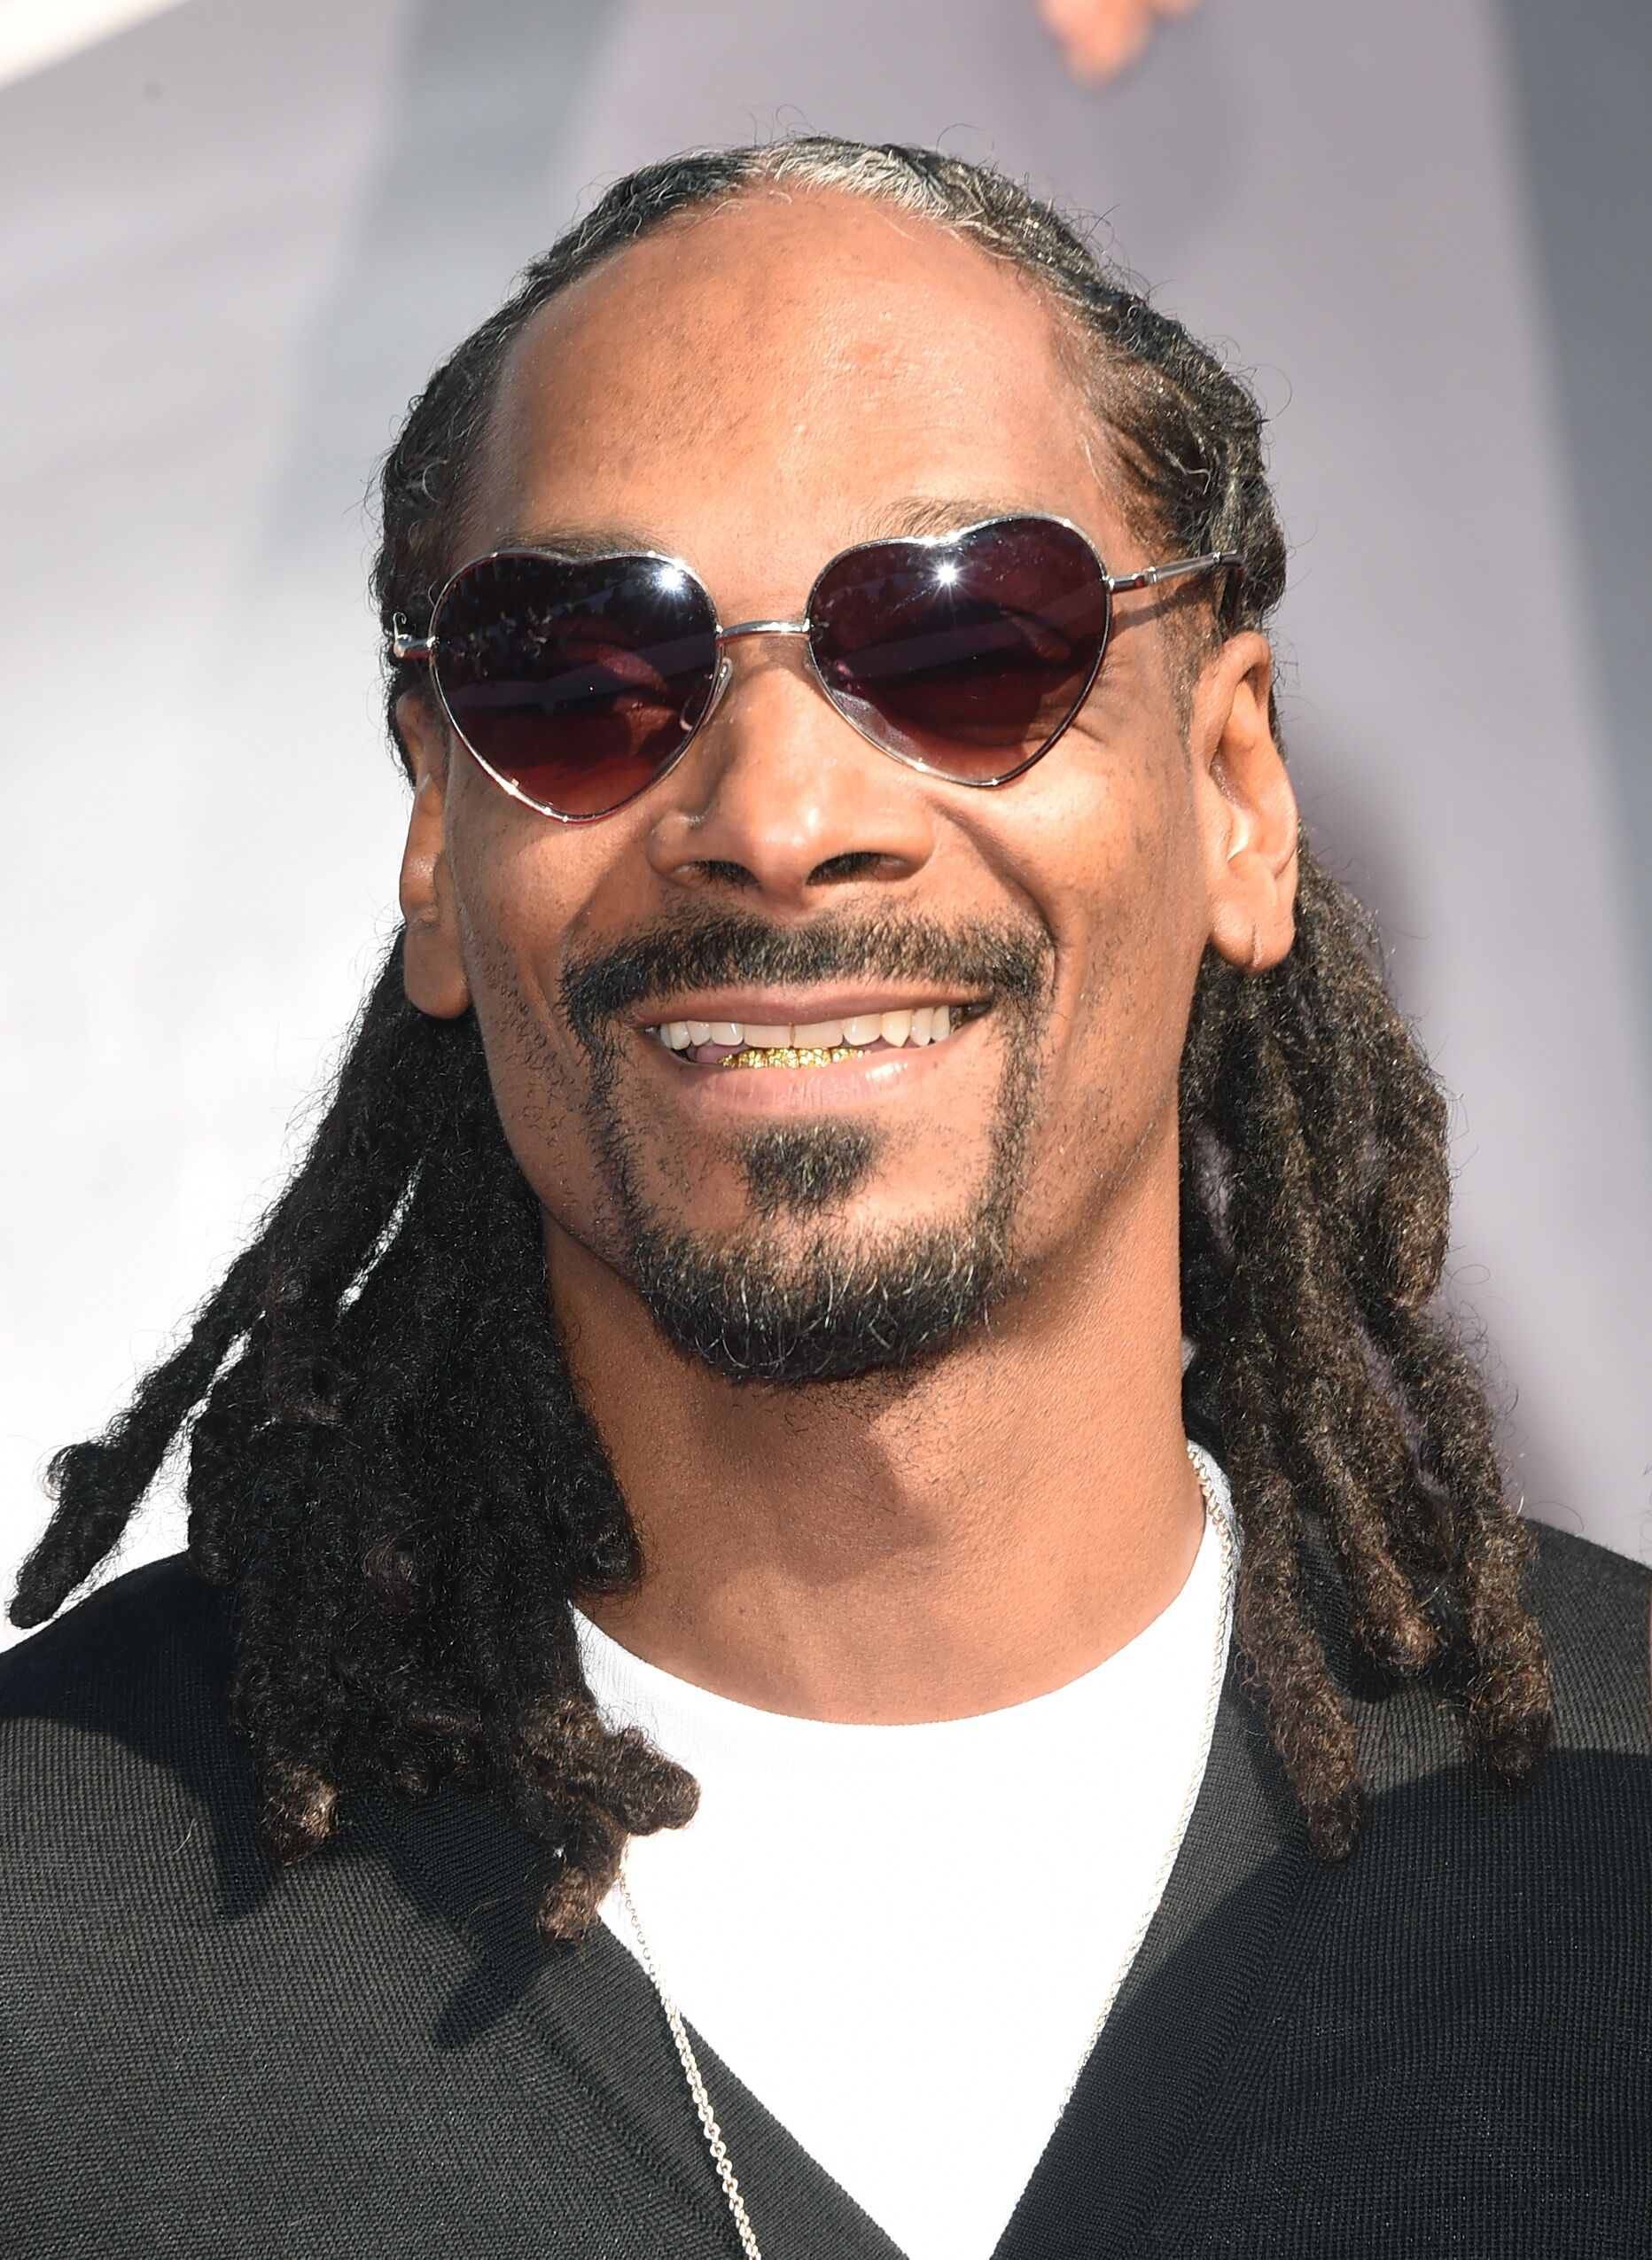 Snoop Dogg attends the 2014 MTV Video Music Awards at The Forum on August 24, 2014 in Inglewood, California | Photo: Getty Images